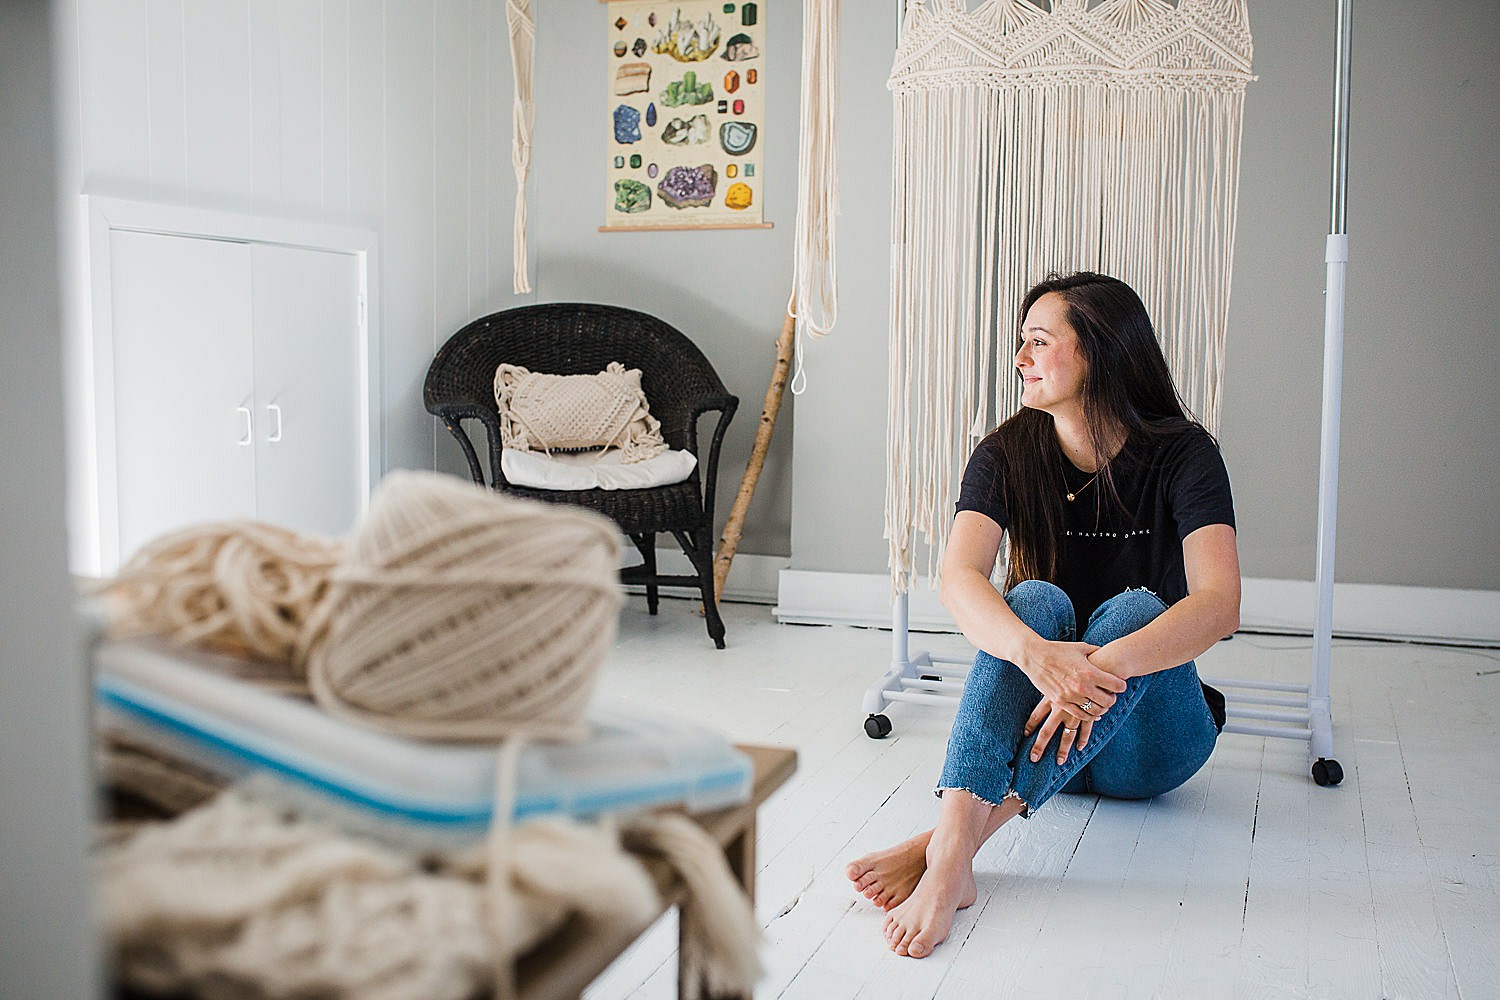 Photo of a young woman sitting in a bright studio space creating macrame art.